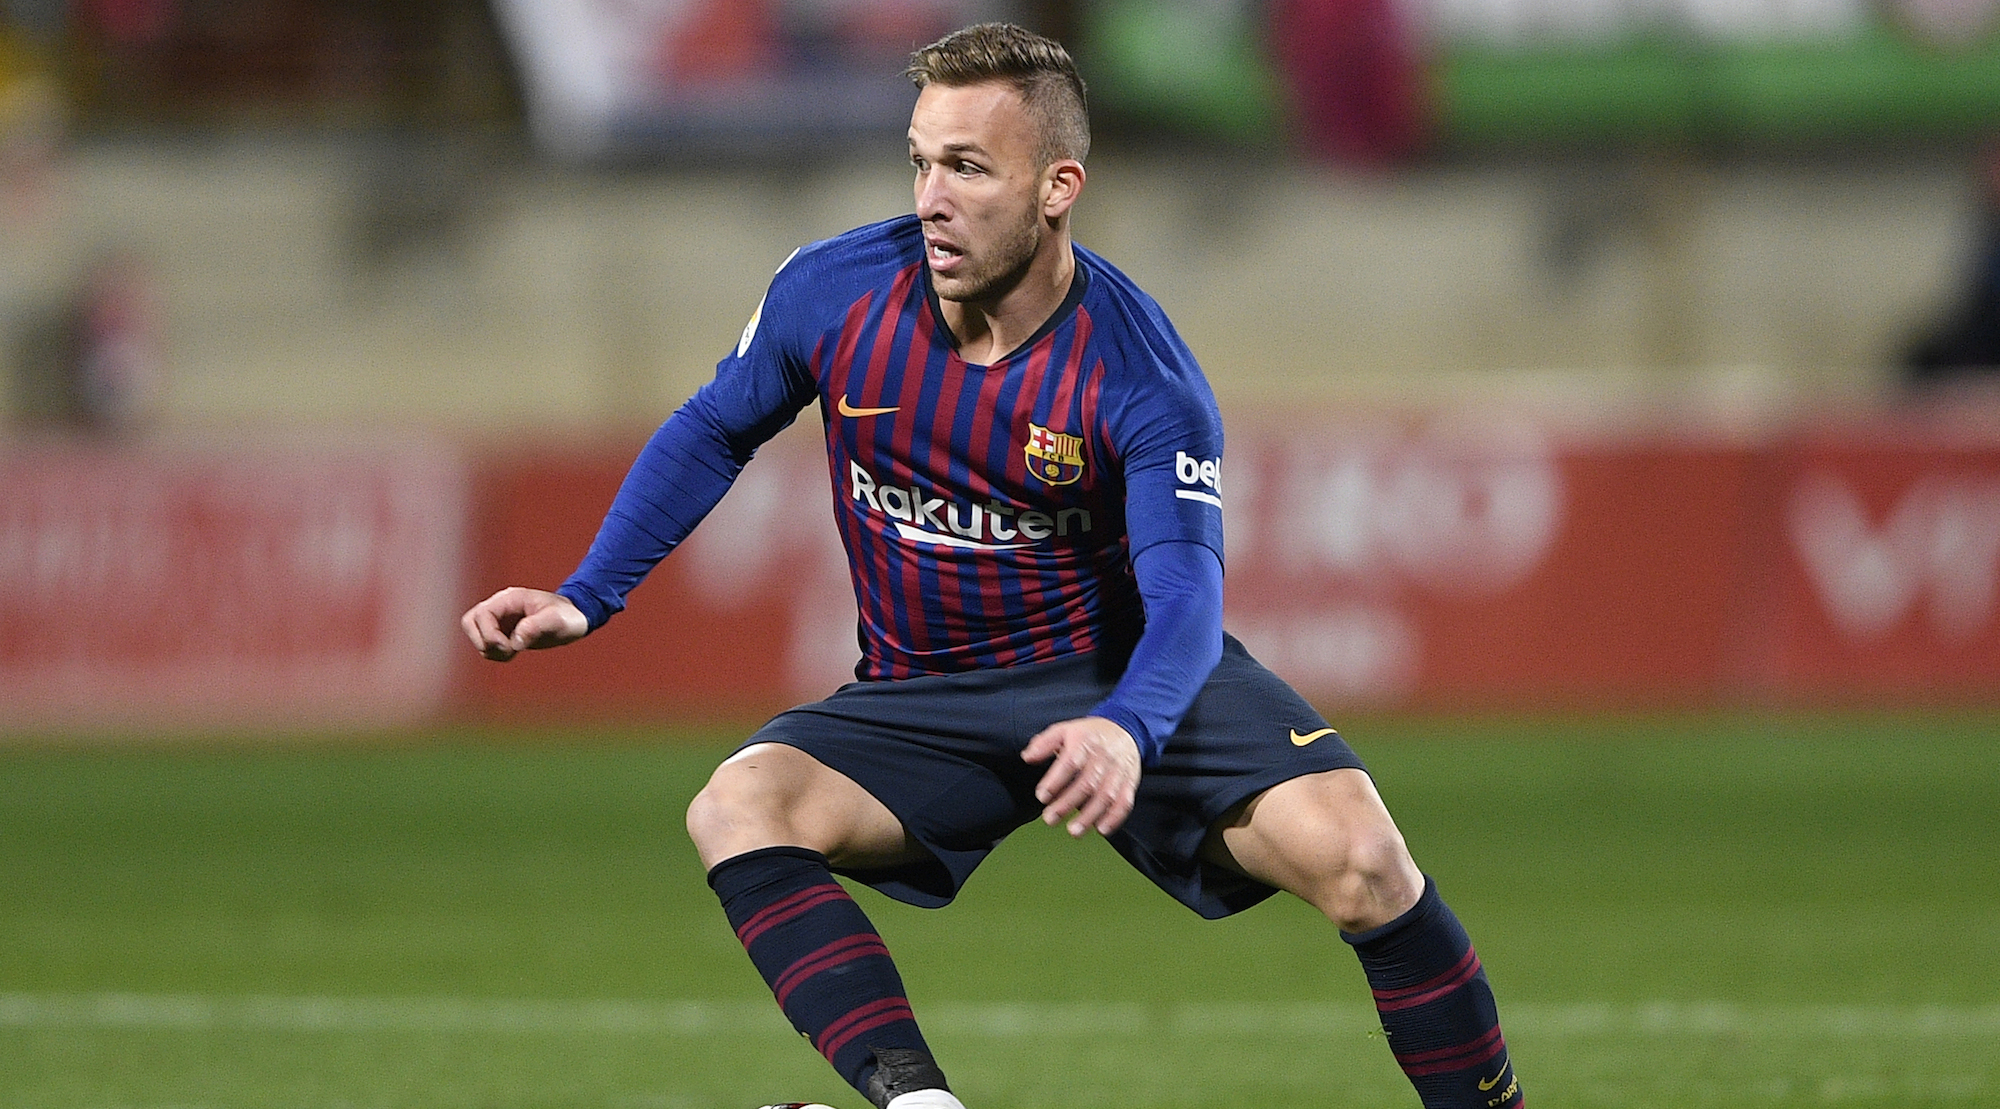 Arthur of FC Barcelona in action during the Spanish Copa del Rey match between Cultural Leonesa and FC Barcelona at Estadio Reino de Leon on October 31, 2018 in Leon, Spain. (Photo by Octavio Passos/Getty Images)